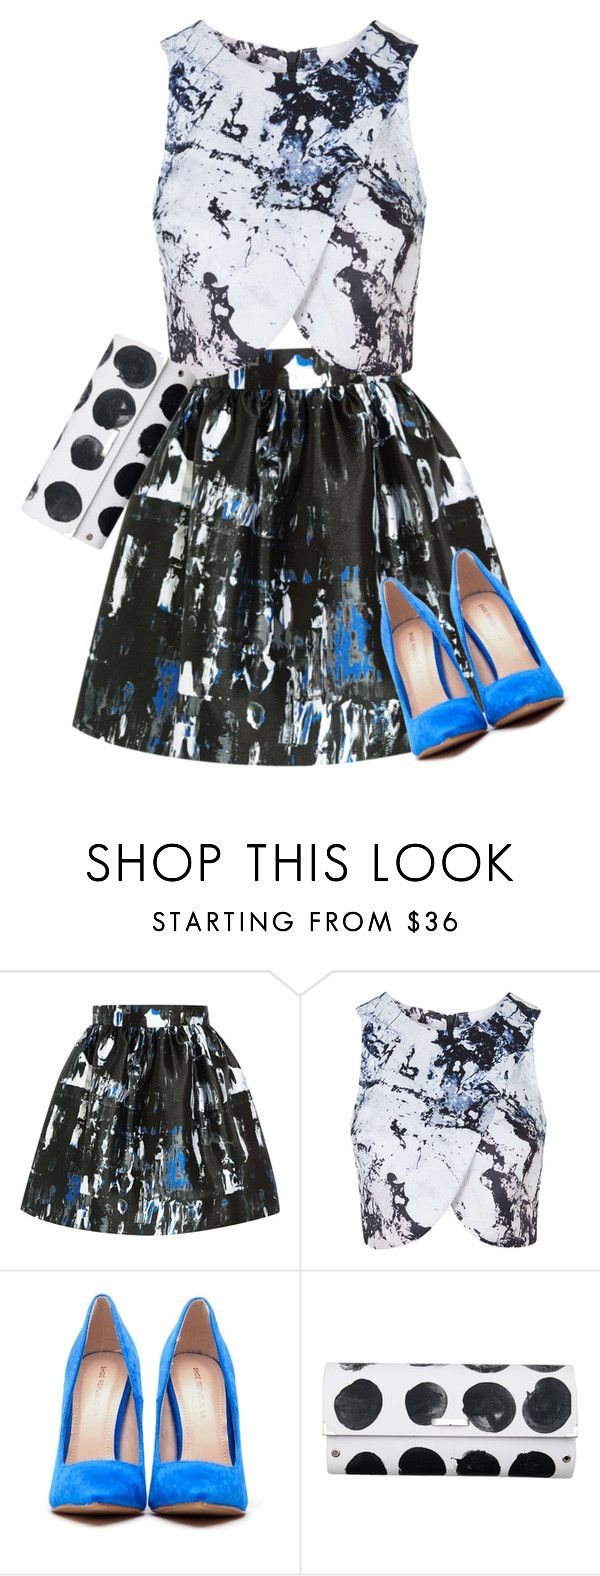 """Untitled #450"" by iambobthequeen ❤ liked on Polyvore featuring McQ by Alexander McQueen, Topshop and Spanaki"